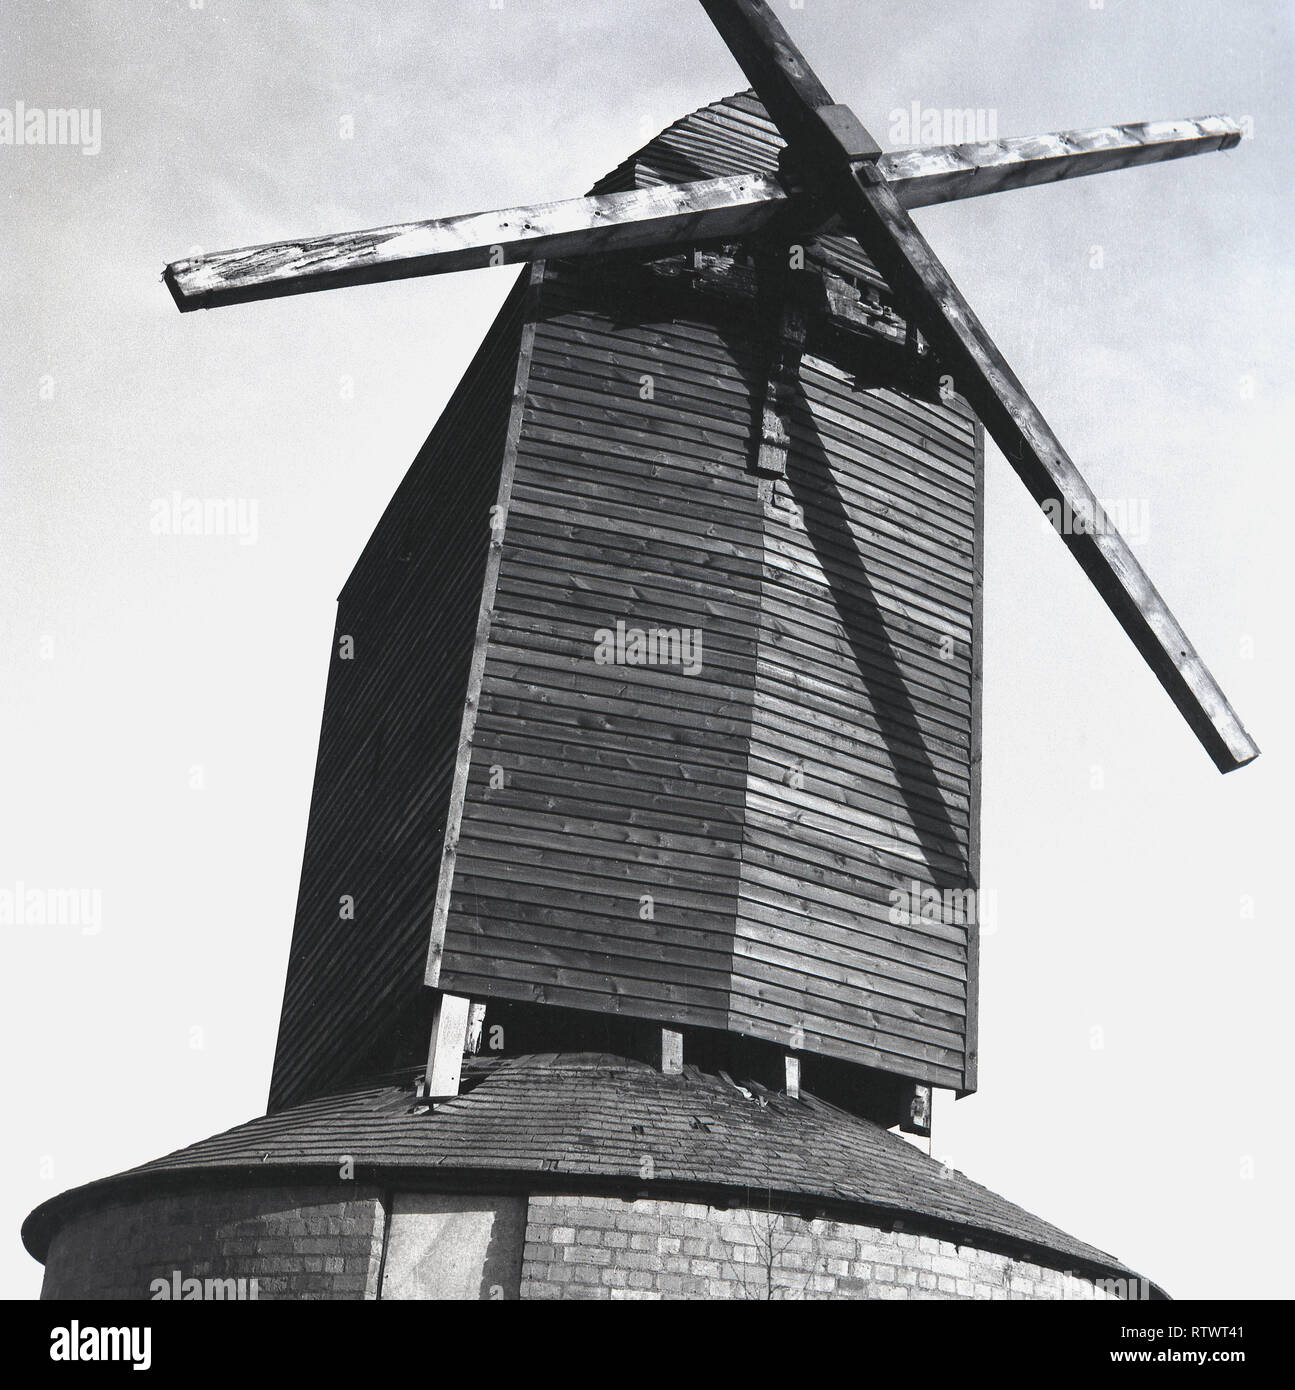 1970s, the Brill Windmill, Bucks, England. A traditonal windmill, the picture shows the plain, basic 'post mill' here with wooden vanes or blades and a wooden clapper board 'post' fixed onto the mill's main structure or body. This kind of 'post mill' is considered the earliest type of European windmill and is so named as the large upright post is balanced on the main structure or trestle surrounded as seen here by a roundhouse to protect the trestle from the weather and to provide storage space. - Stock Image